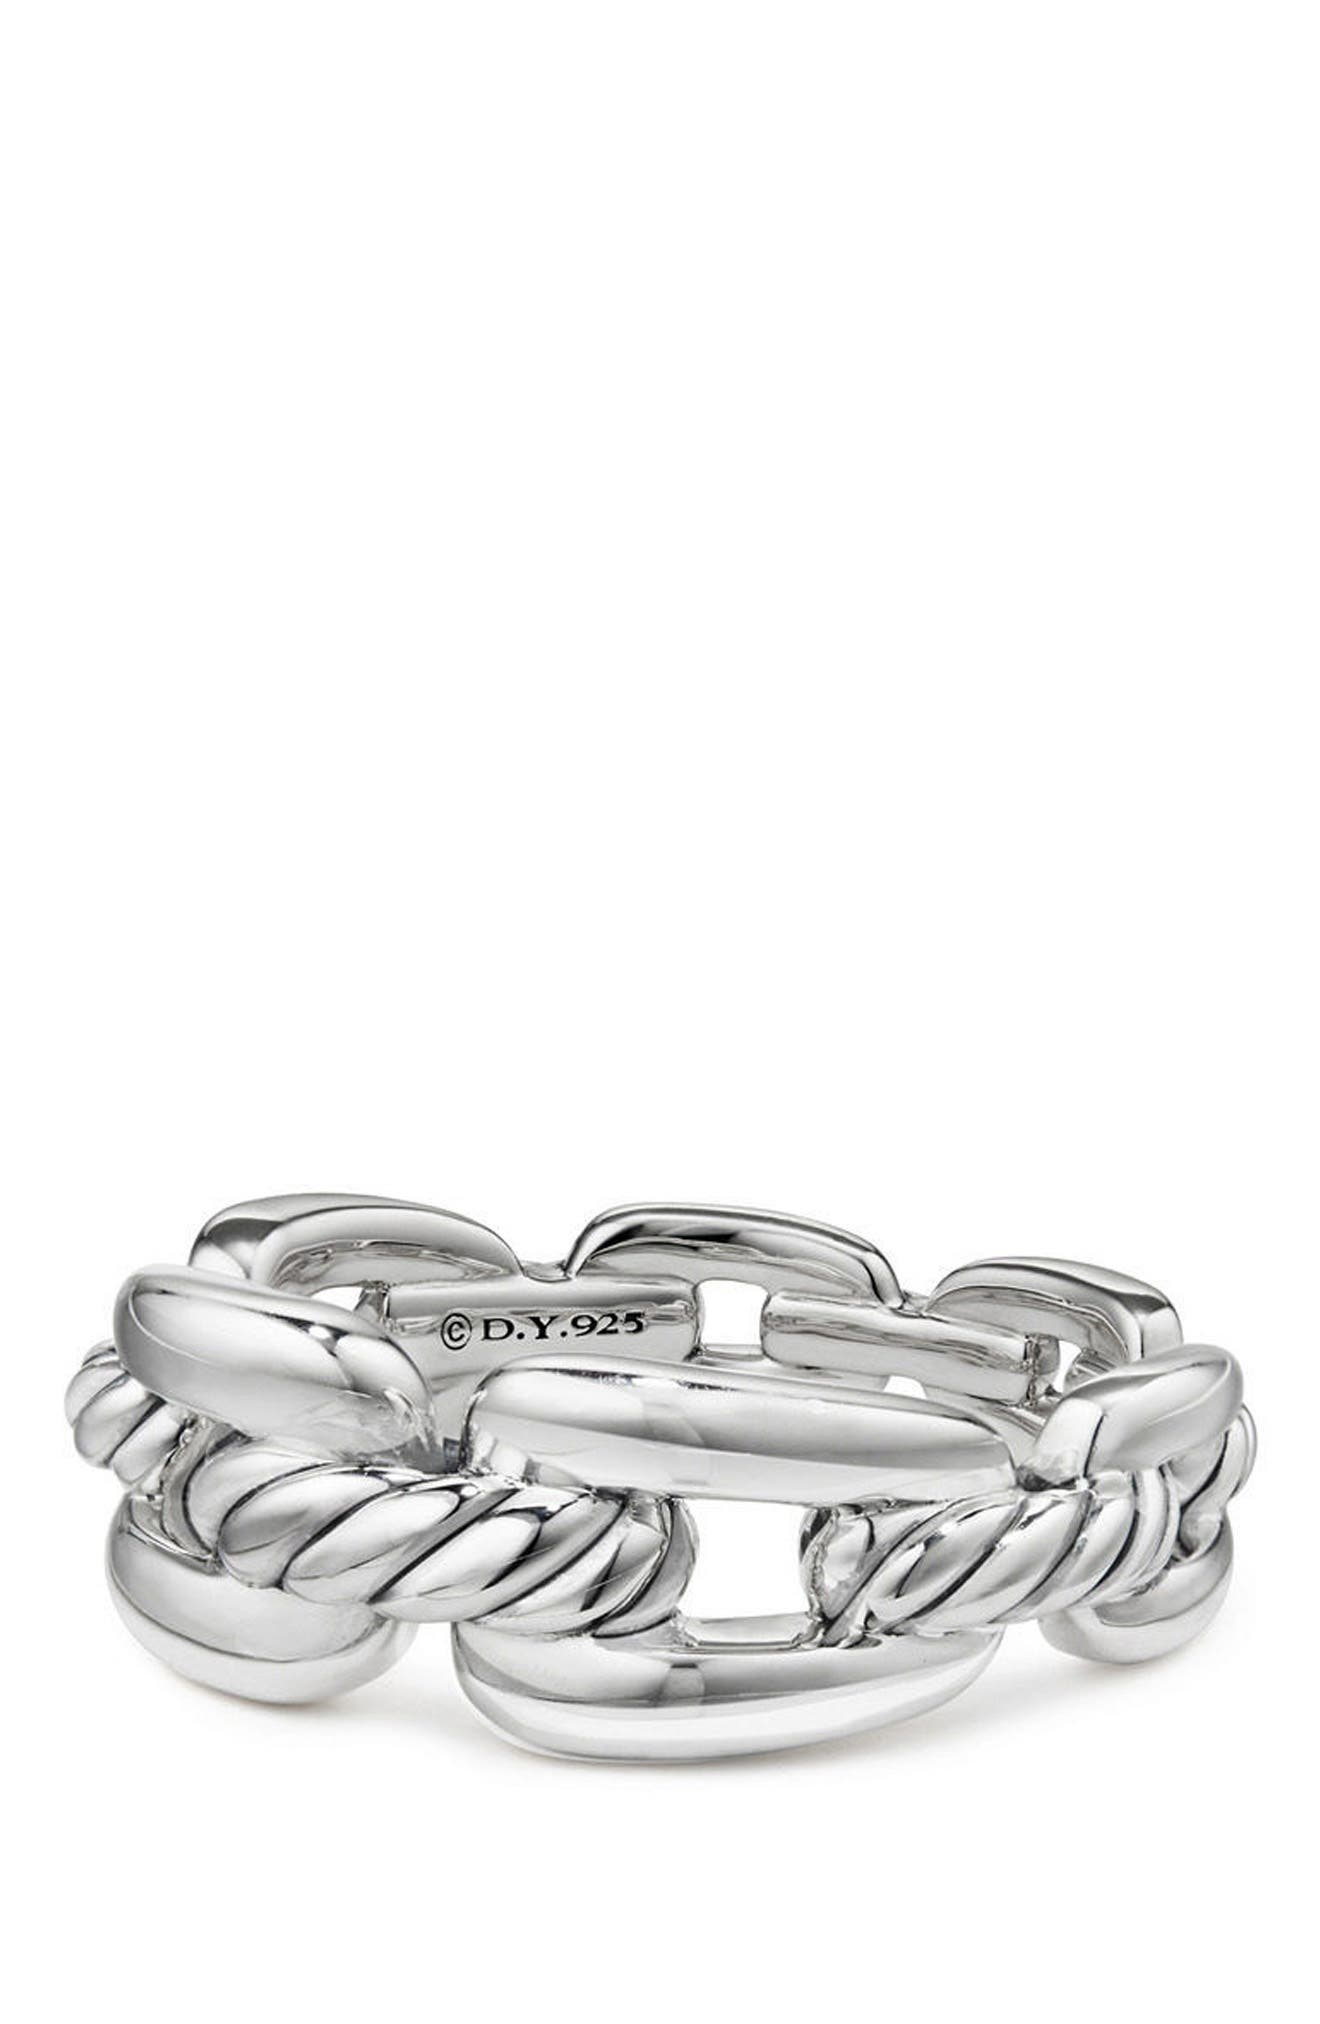 Main Image - David Yurman Wellesley Chain Link Ring with Diamonds